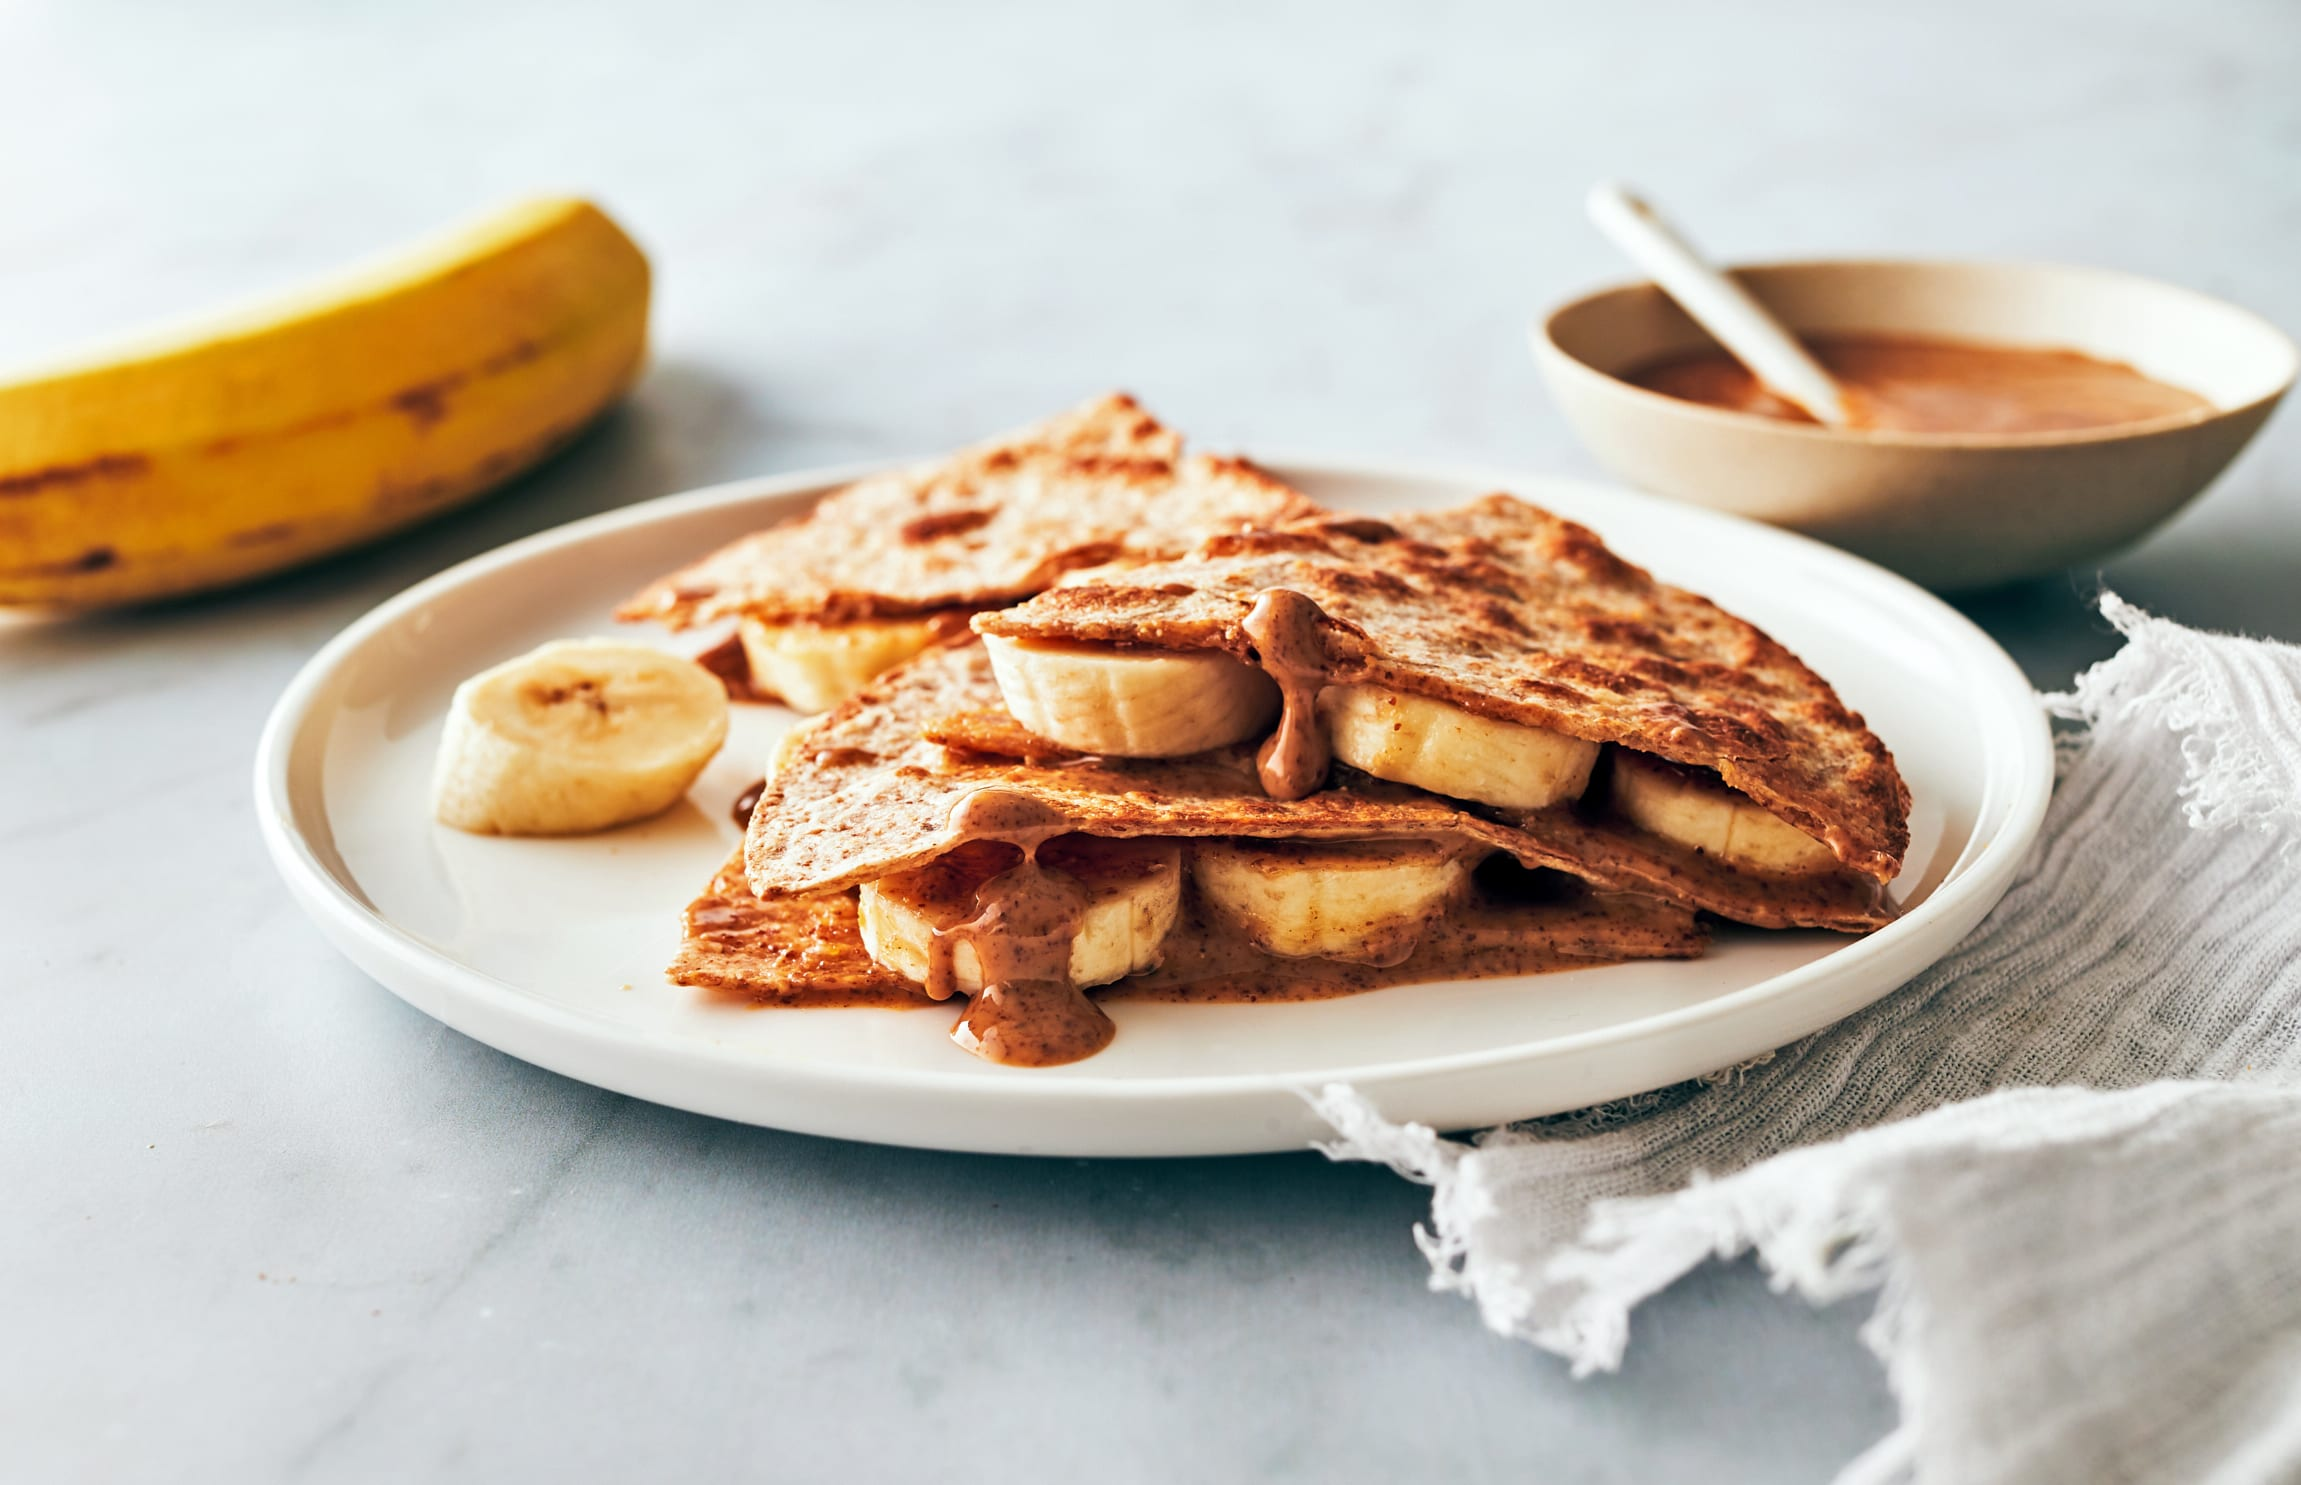 sugar free 3 recipes- Banana and Almond Butter Quesadilla